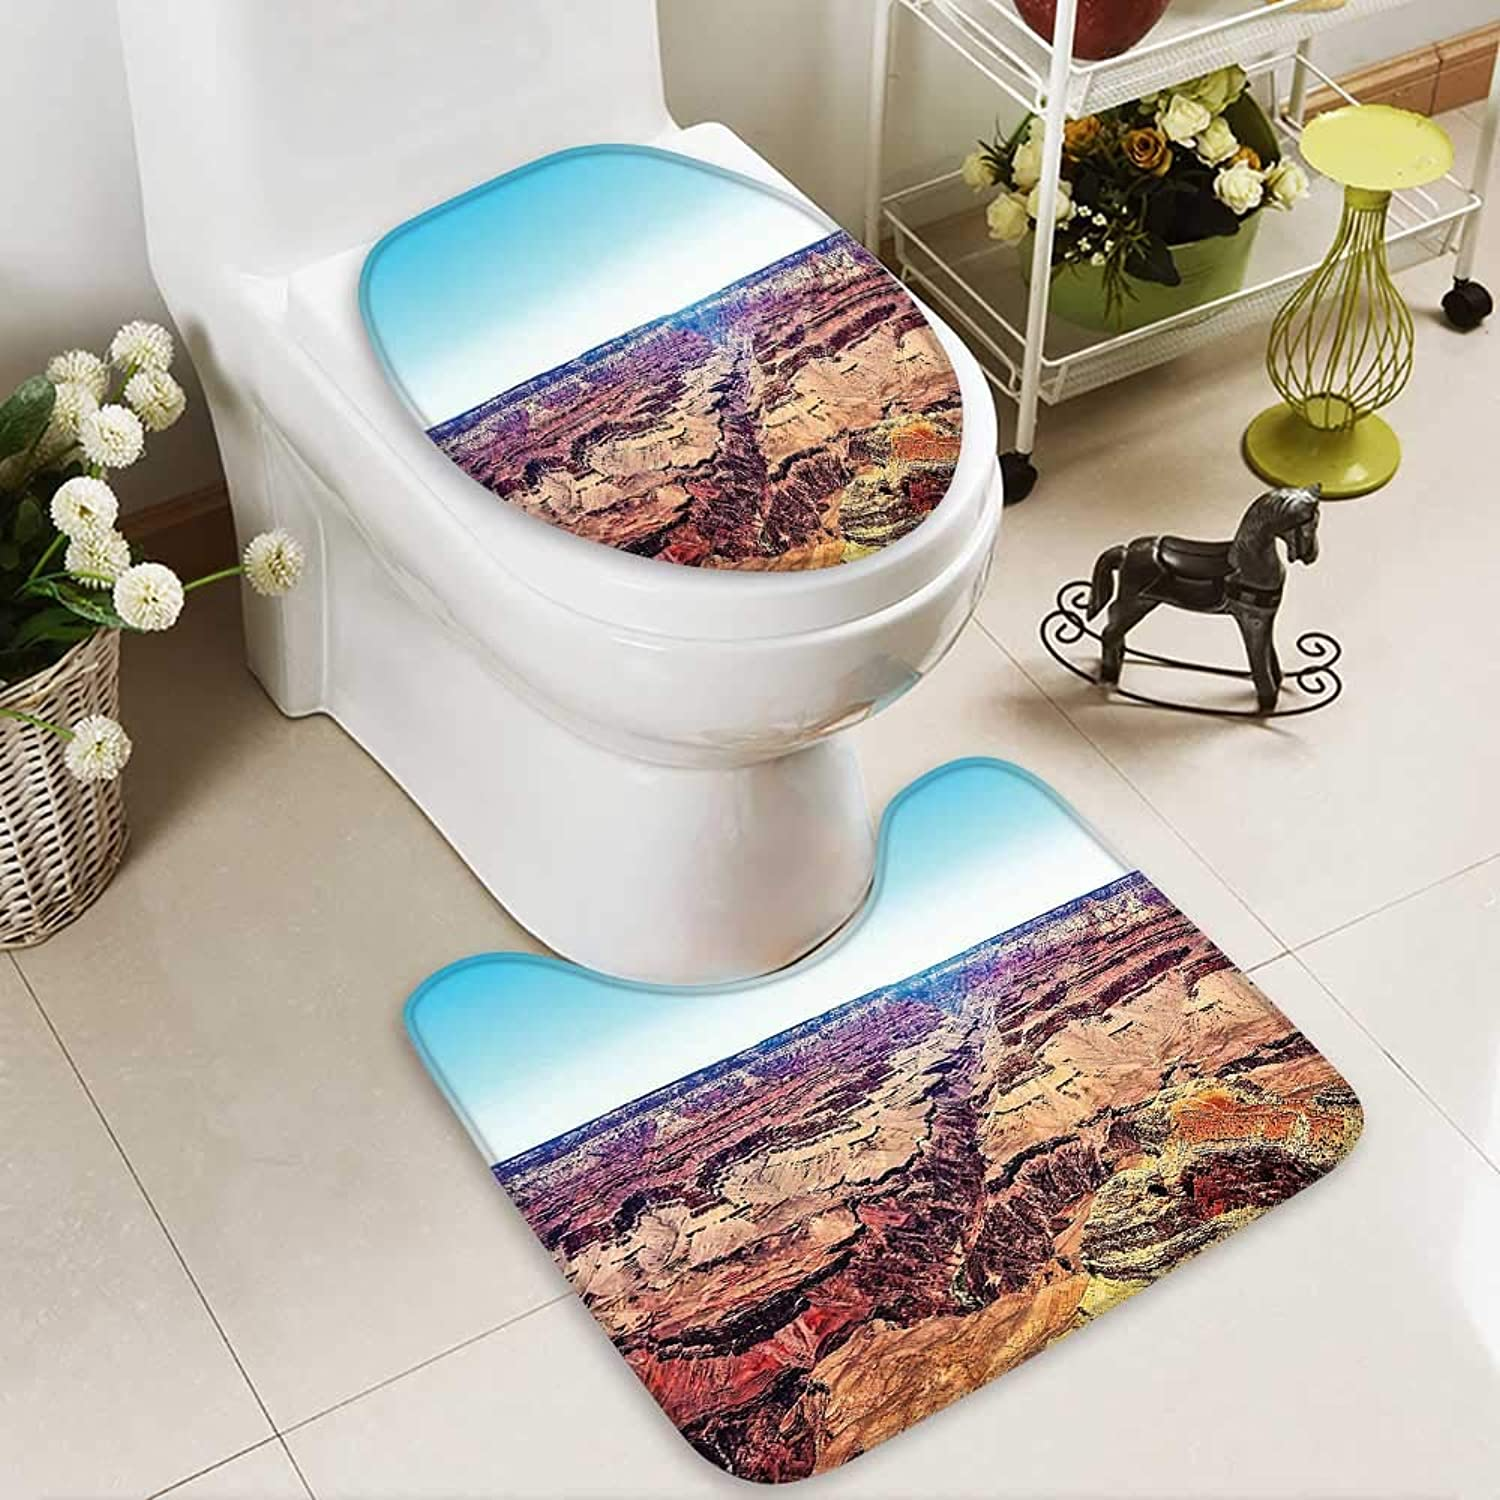 SOCOMIMI 2 Piece Toilet Cover Set Skyline Over Canyon in Summer North Western Heritage Earth Featured Image Tan 3D Digital Printing Rug Set